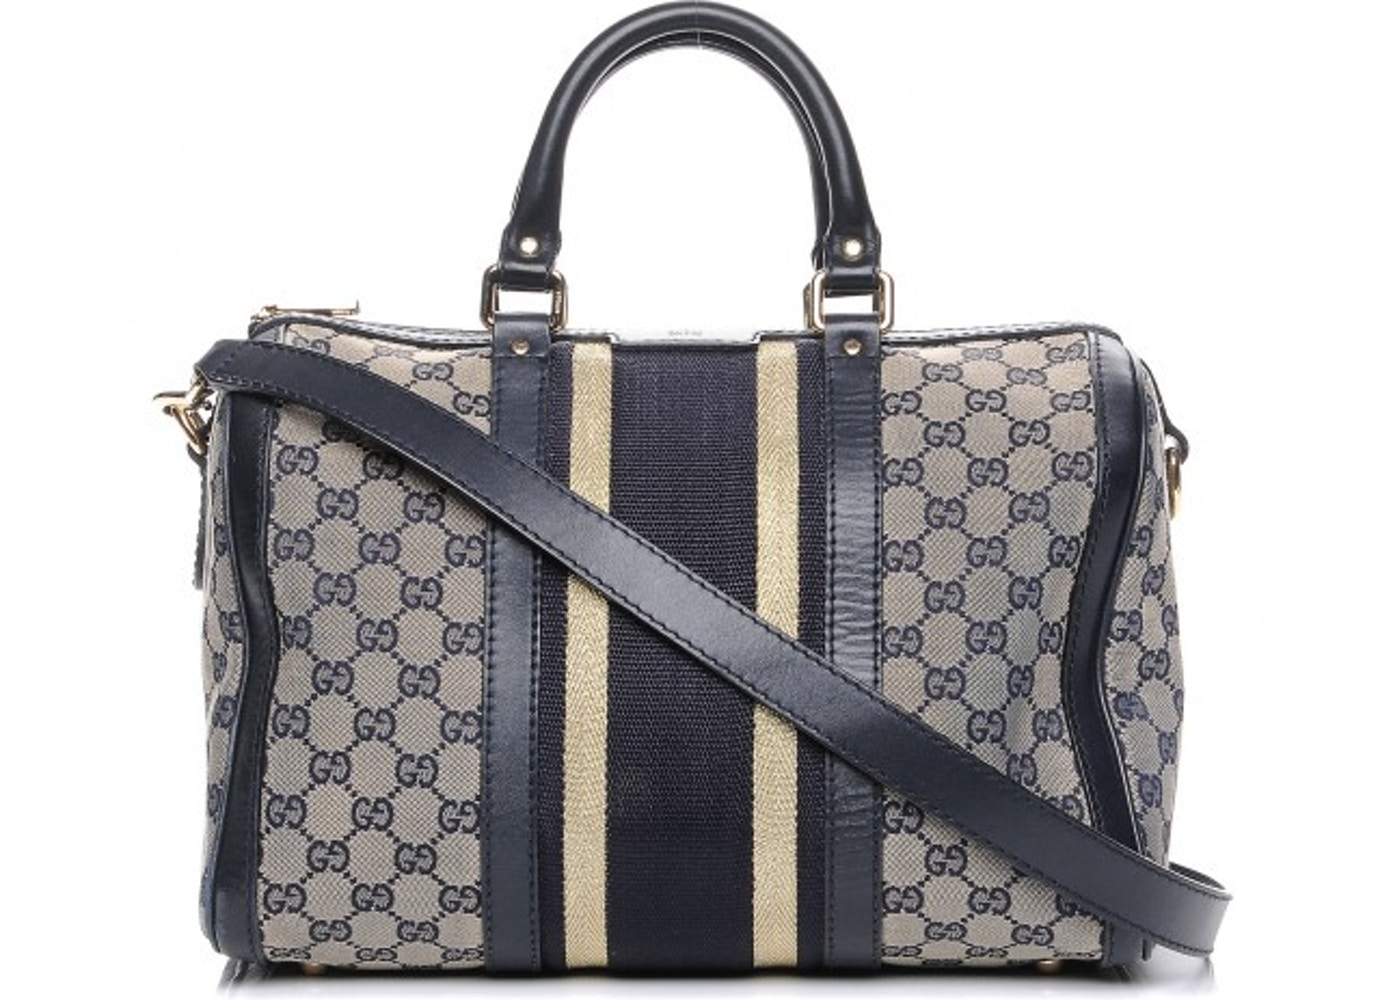 0b290cf021d Gucci Vintage Web Boston Bag Vintage Web GG Web Stripes Medium ...